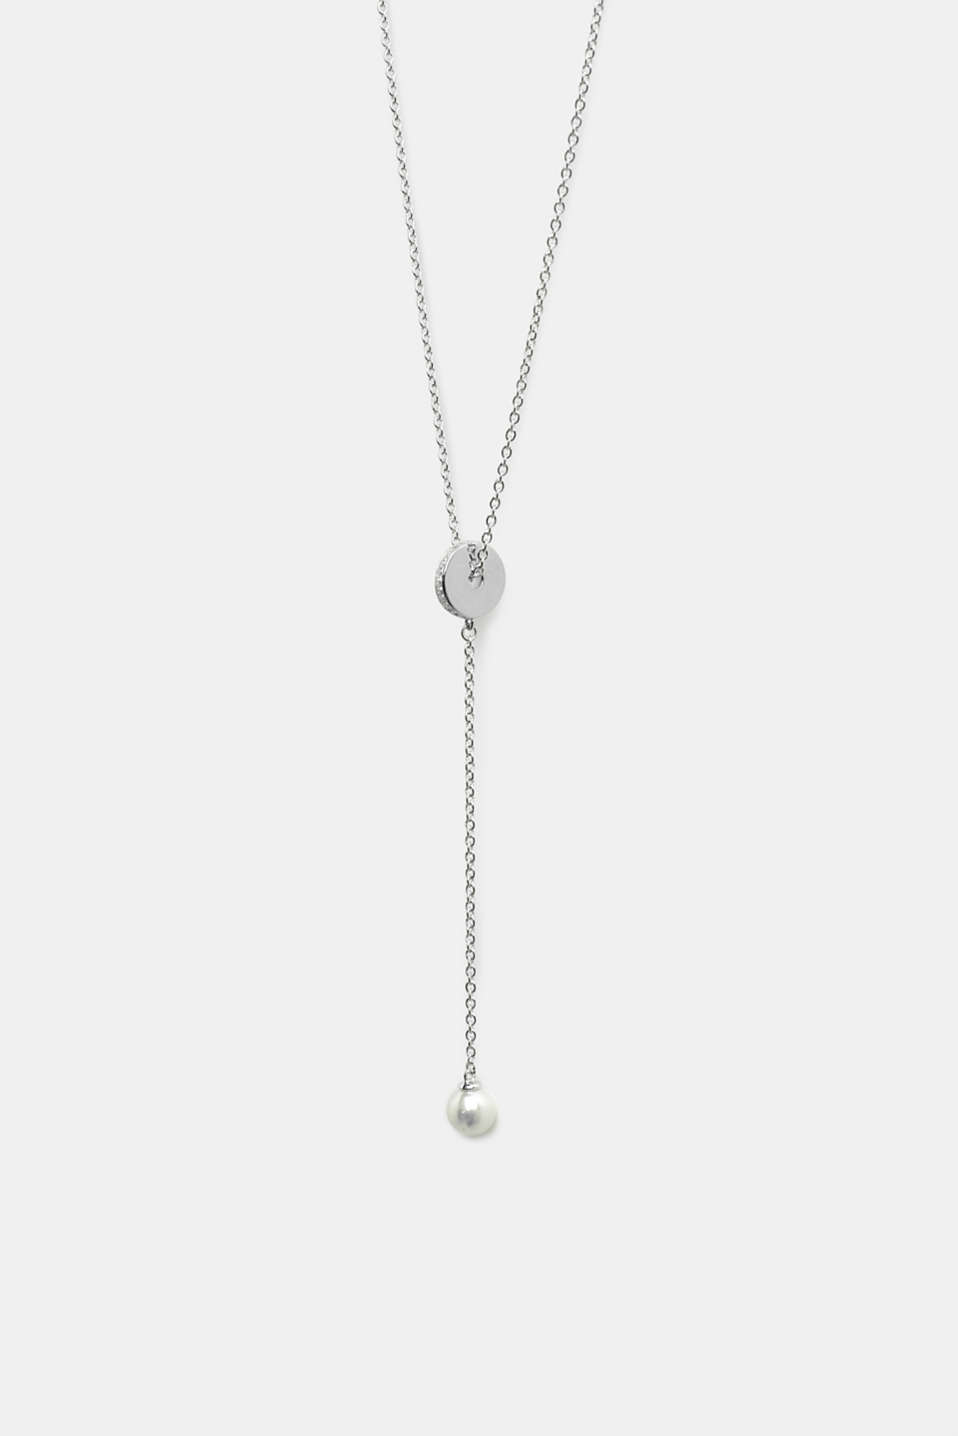 Esprit - Pendant necklace with zirconia, sterling silver